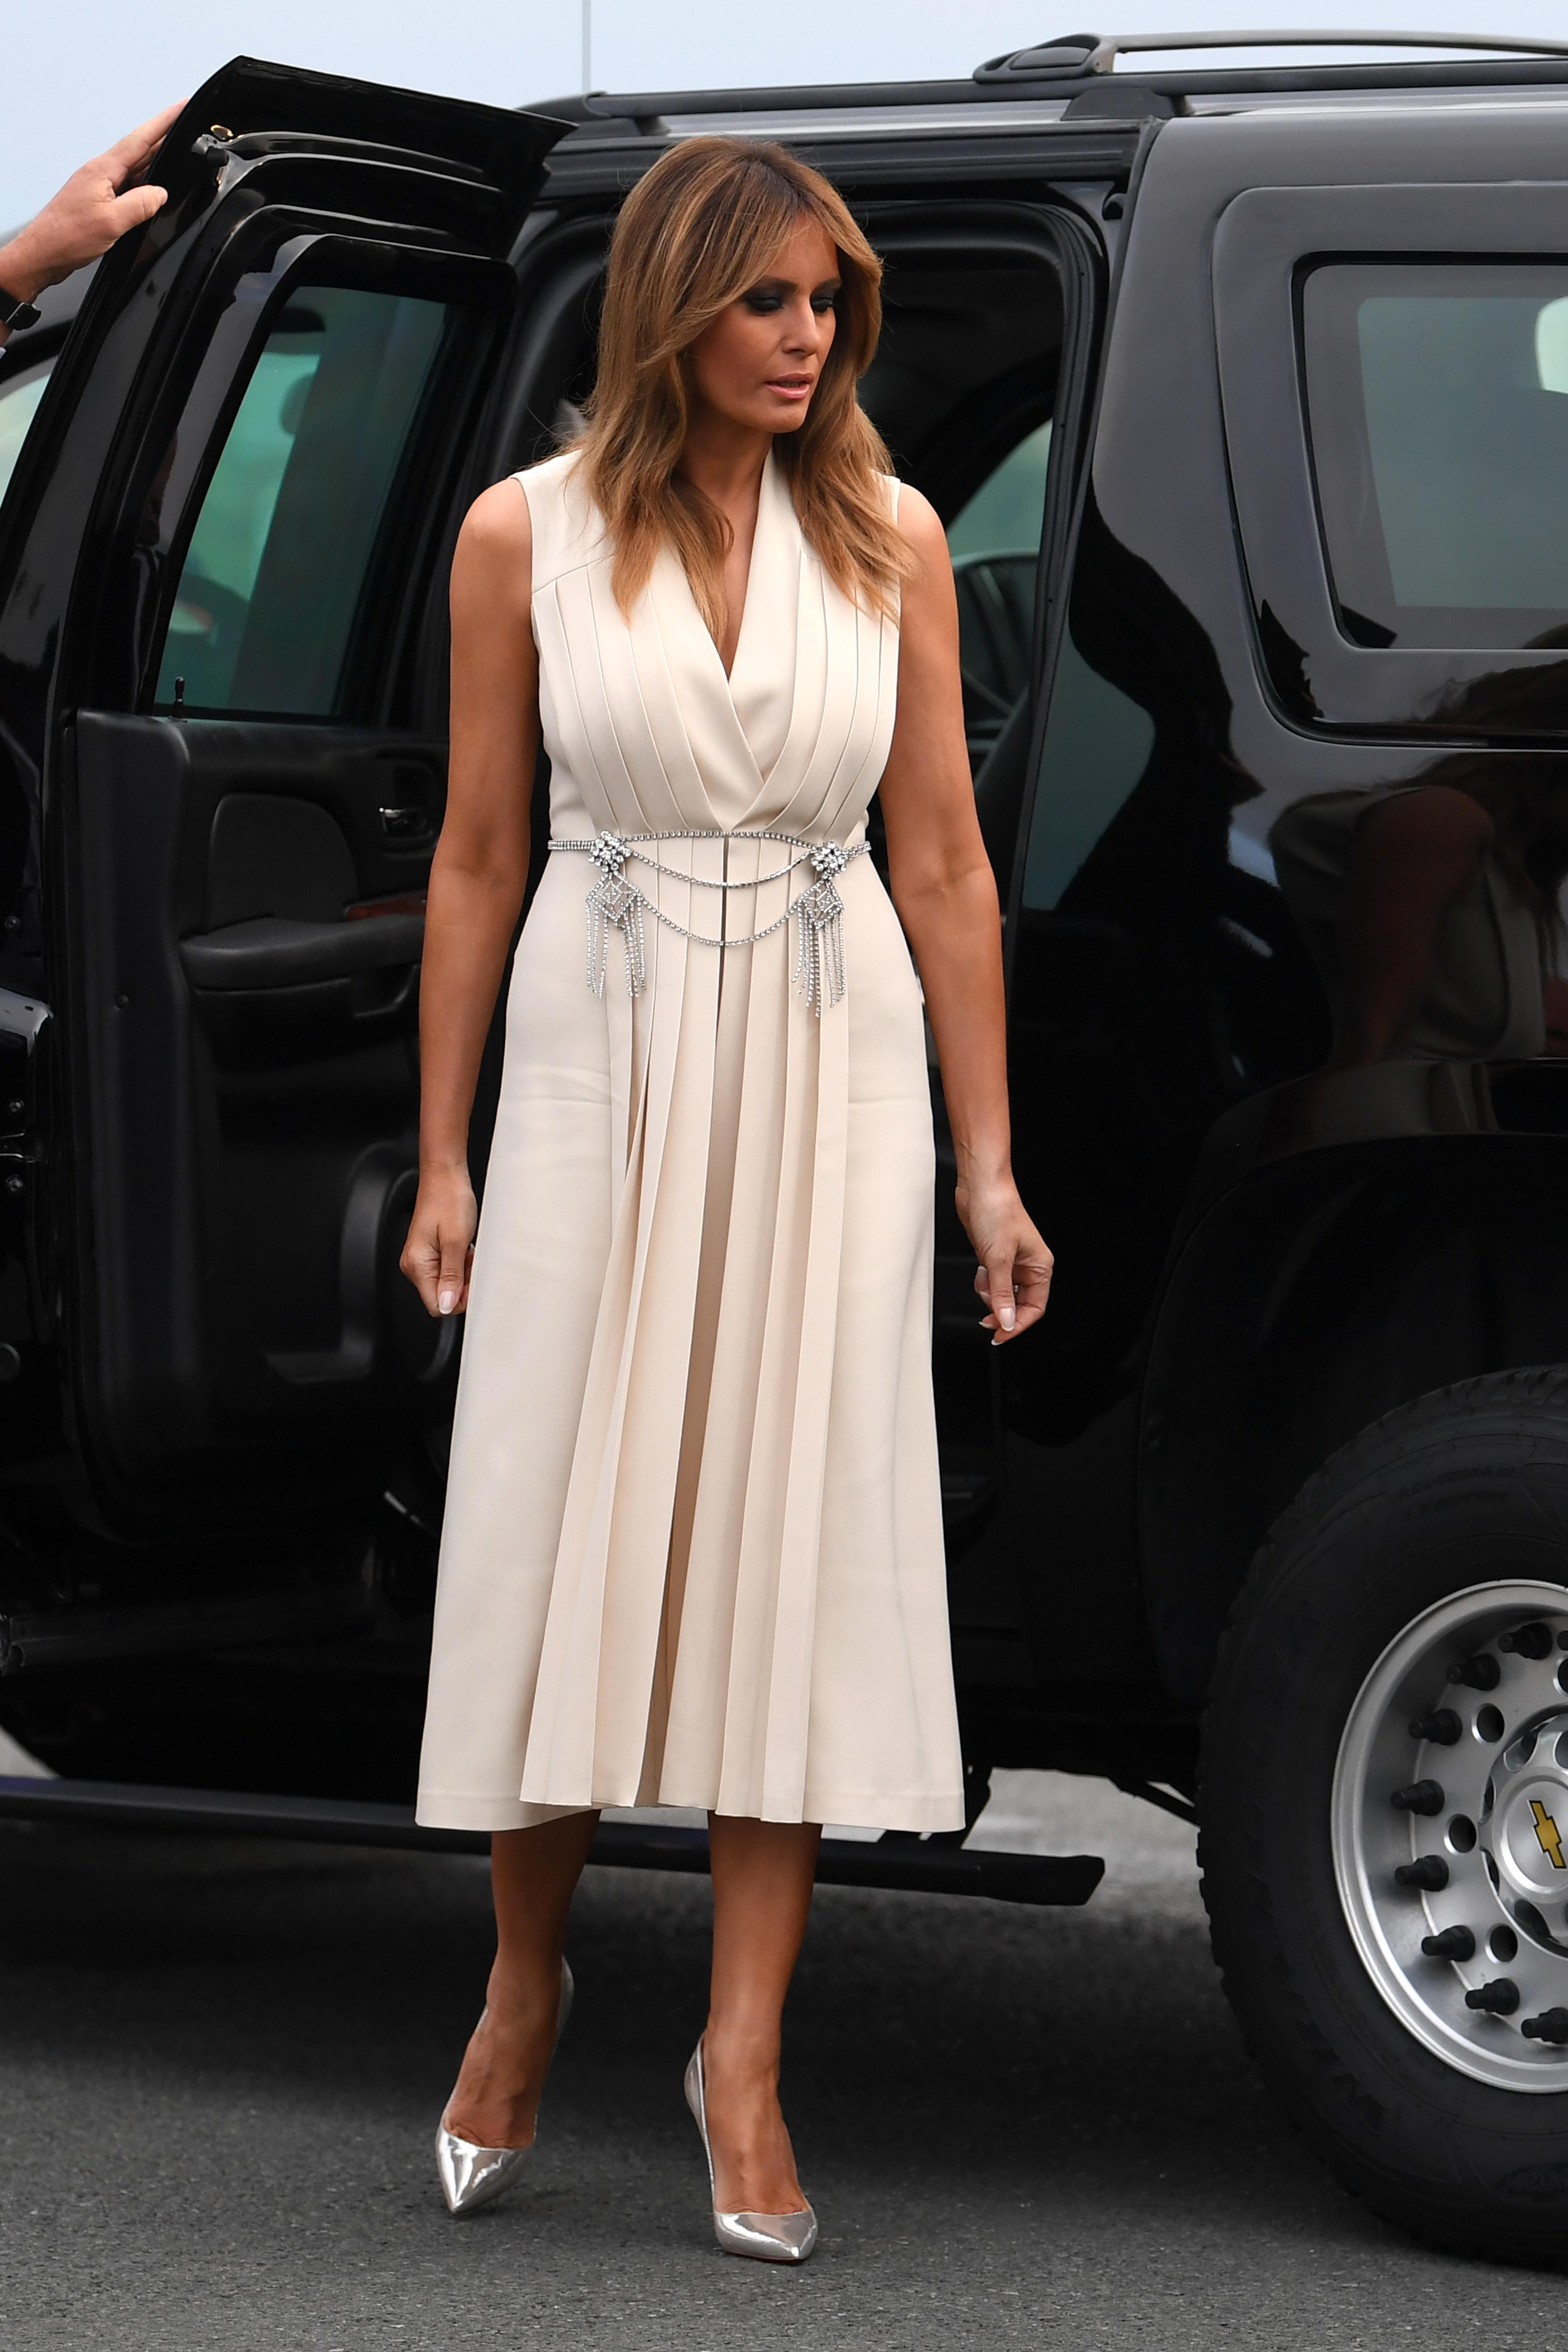 melania trump rocks silver louboutins at g7 summit